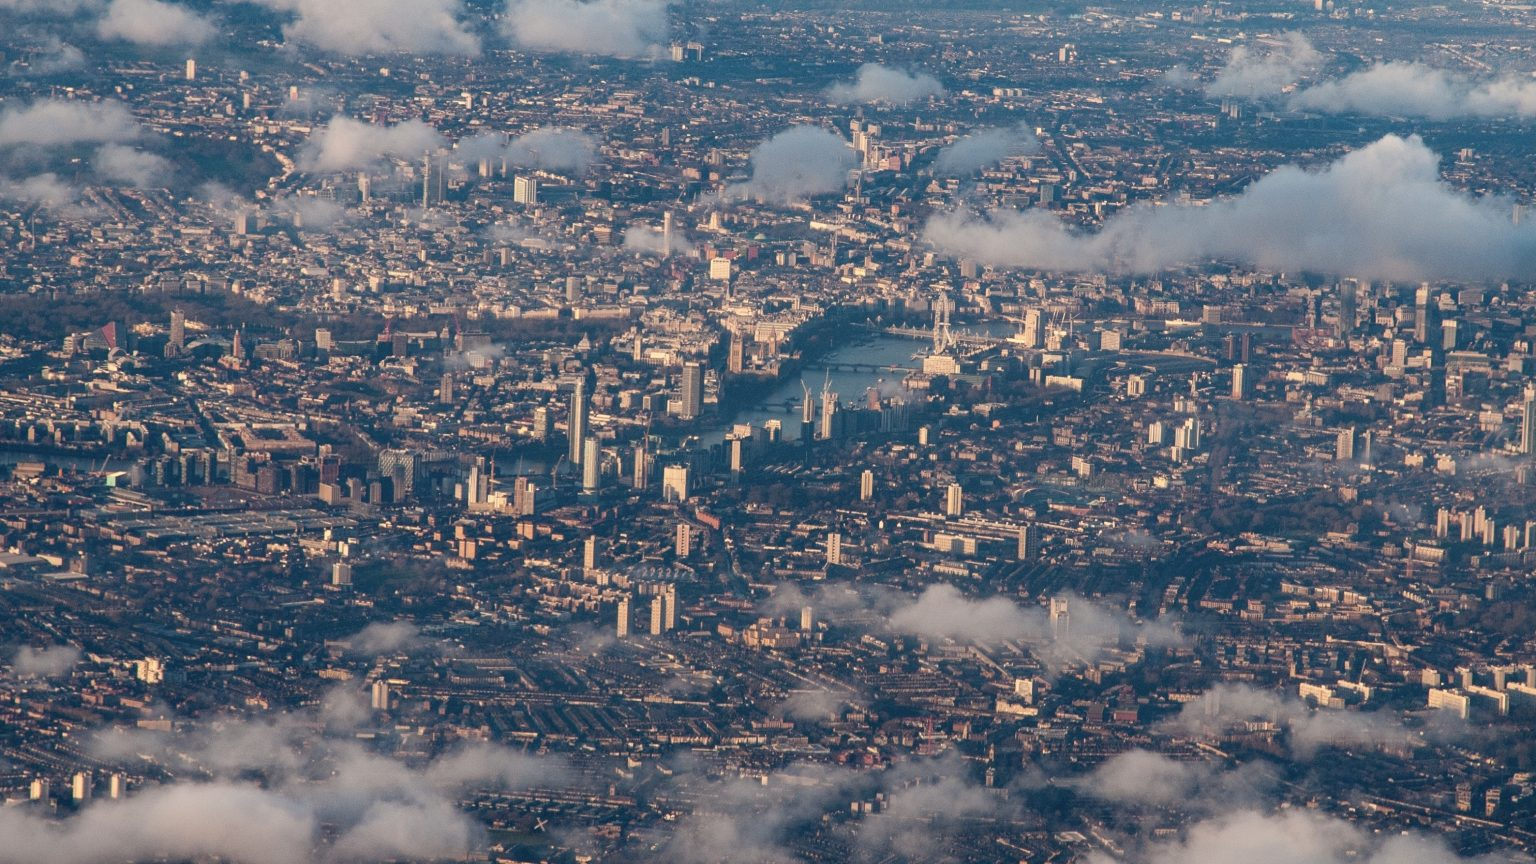 Aerial view of central London through patchy clouds